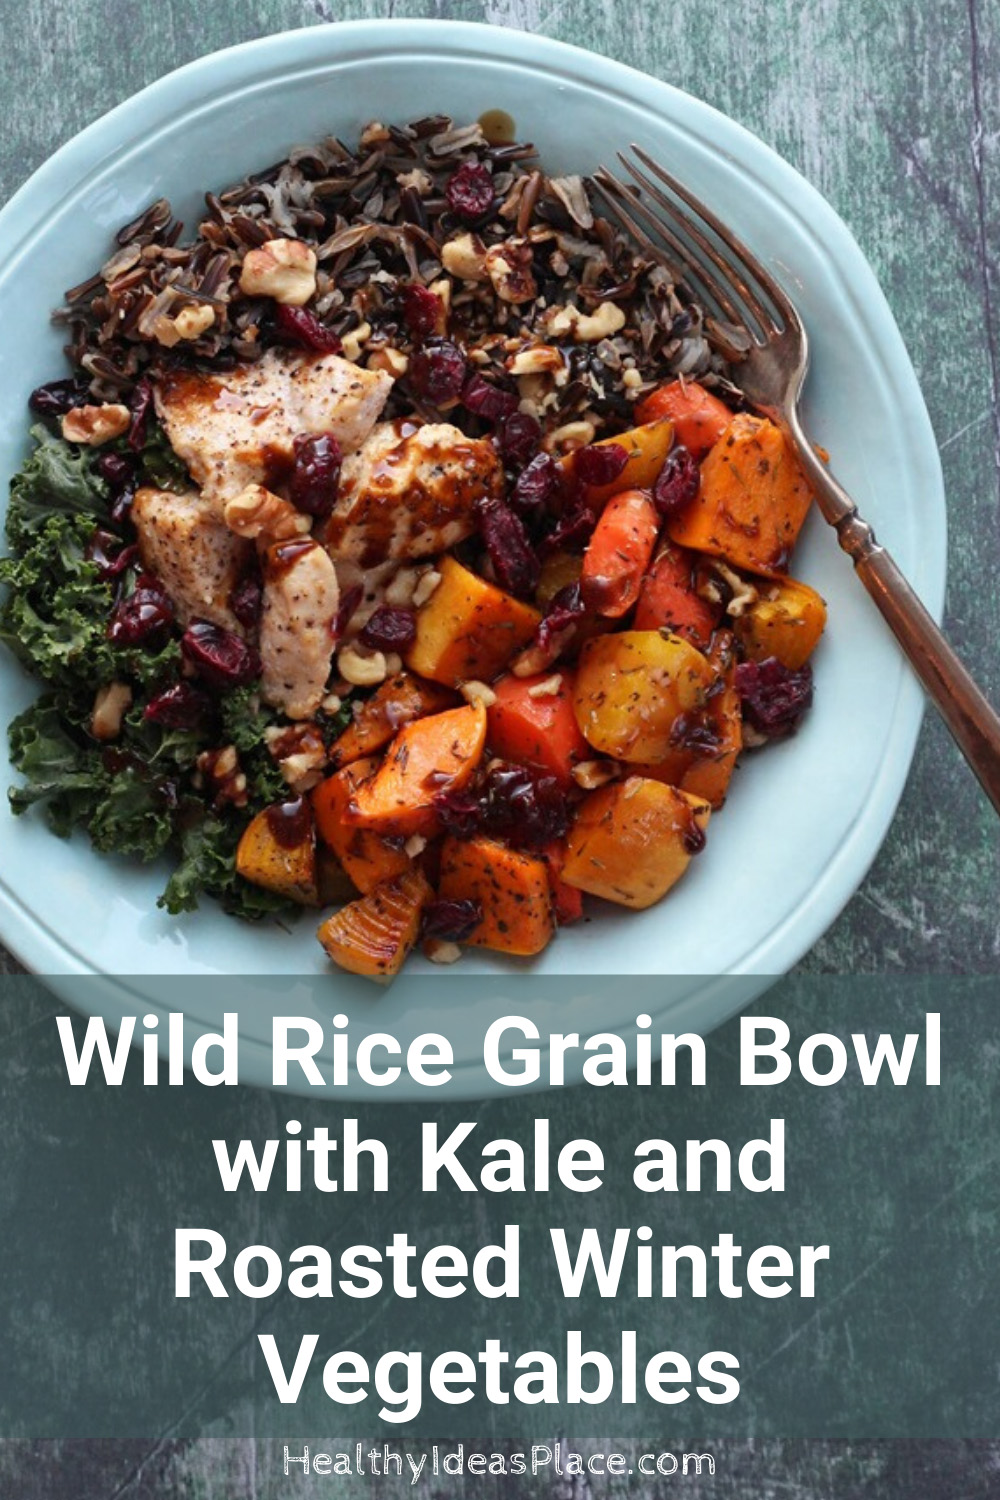 Teal bowl with kale, wild rice, winter vegetables, and chicken